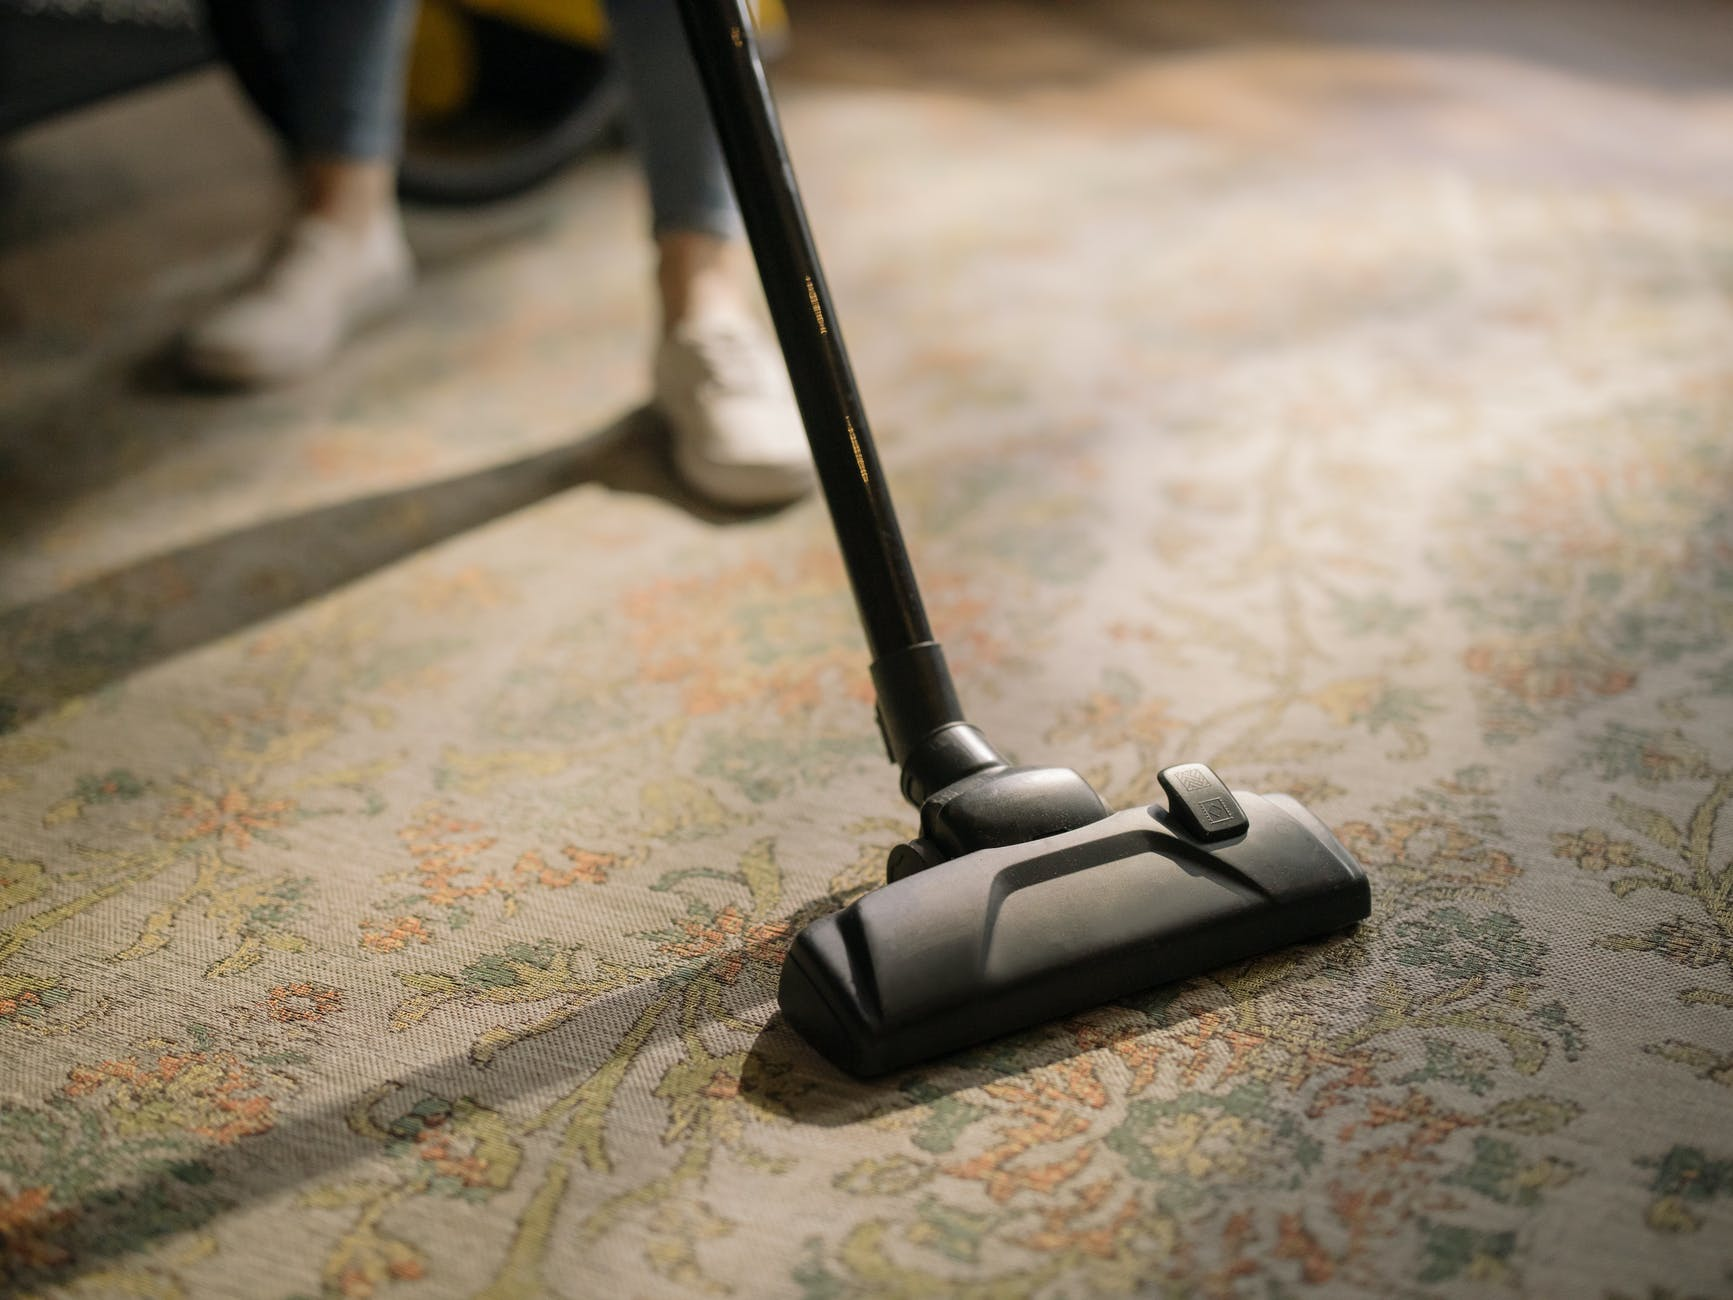 black vacuum cleaner on brown and white area rug